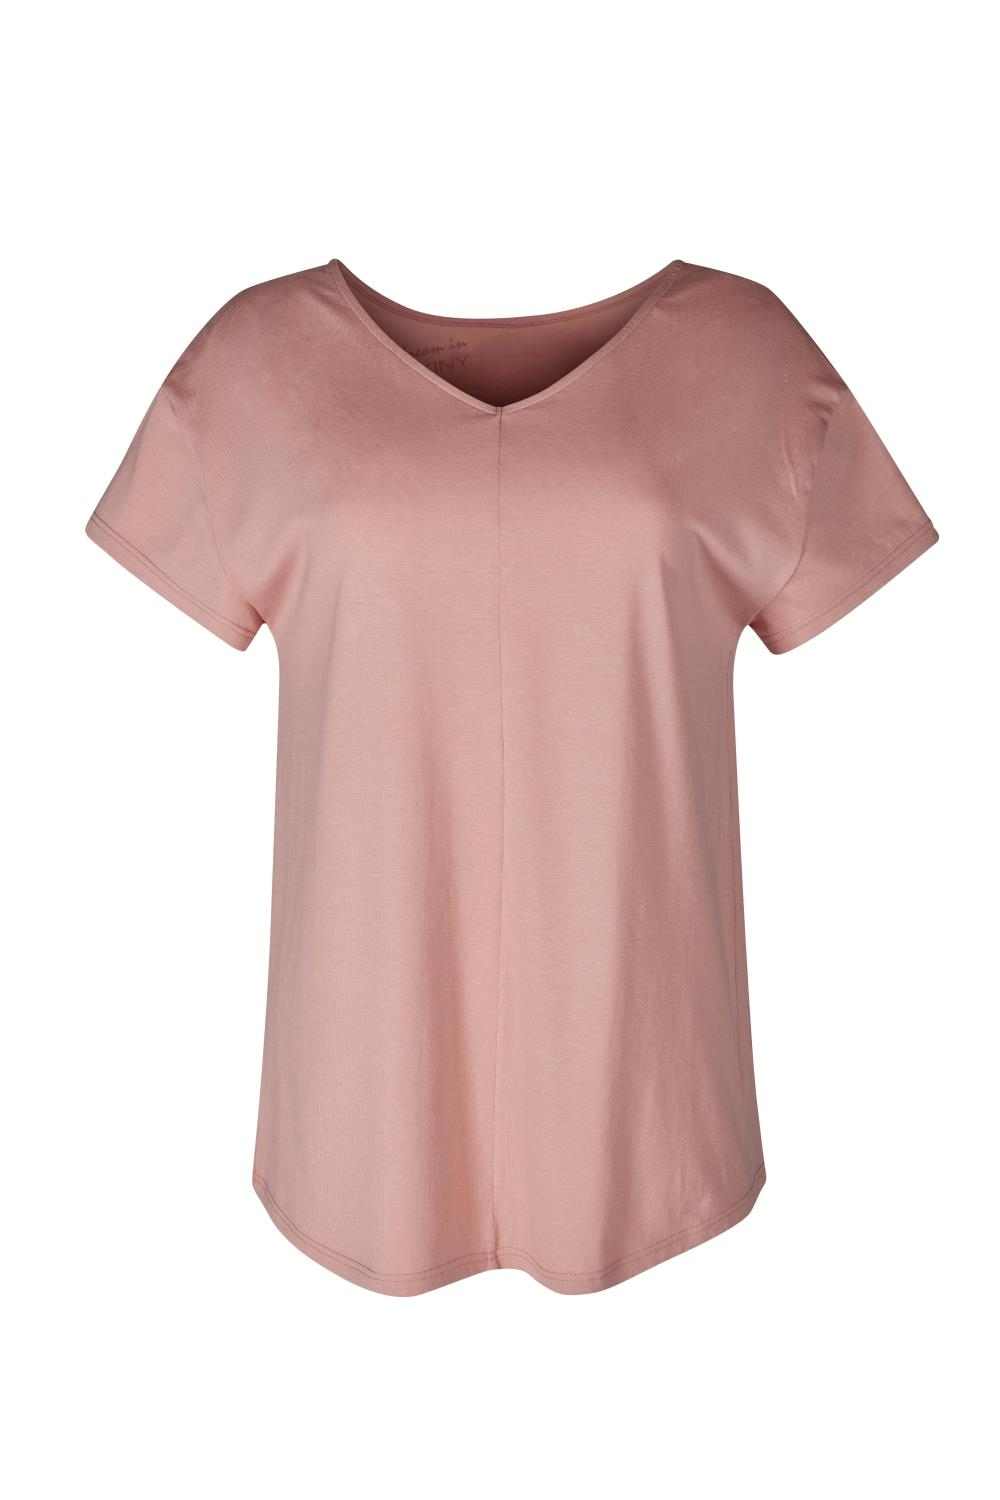 Skiny L. shirt s/sl, sleep & dream, rose dawn